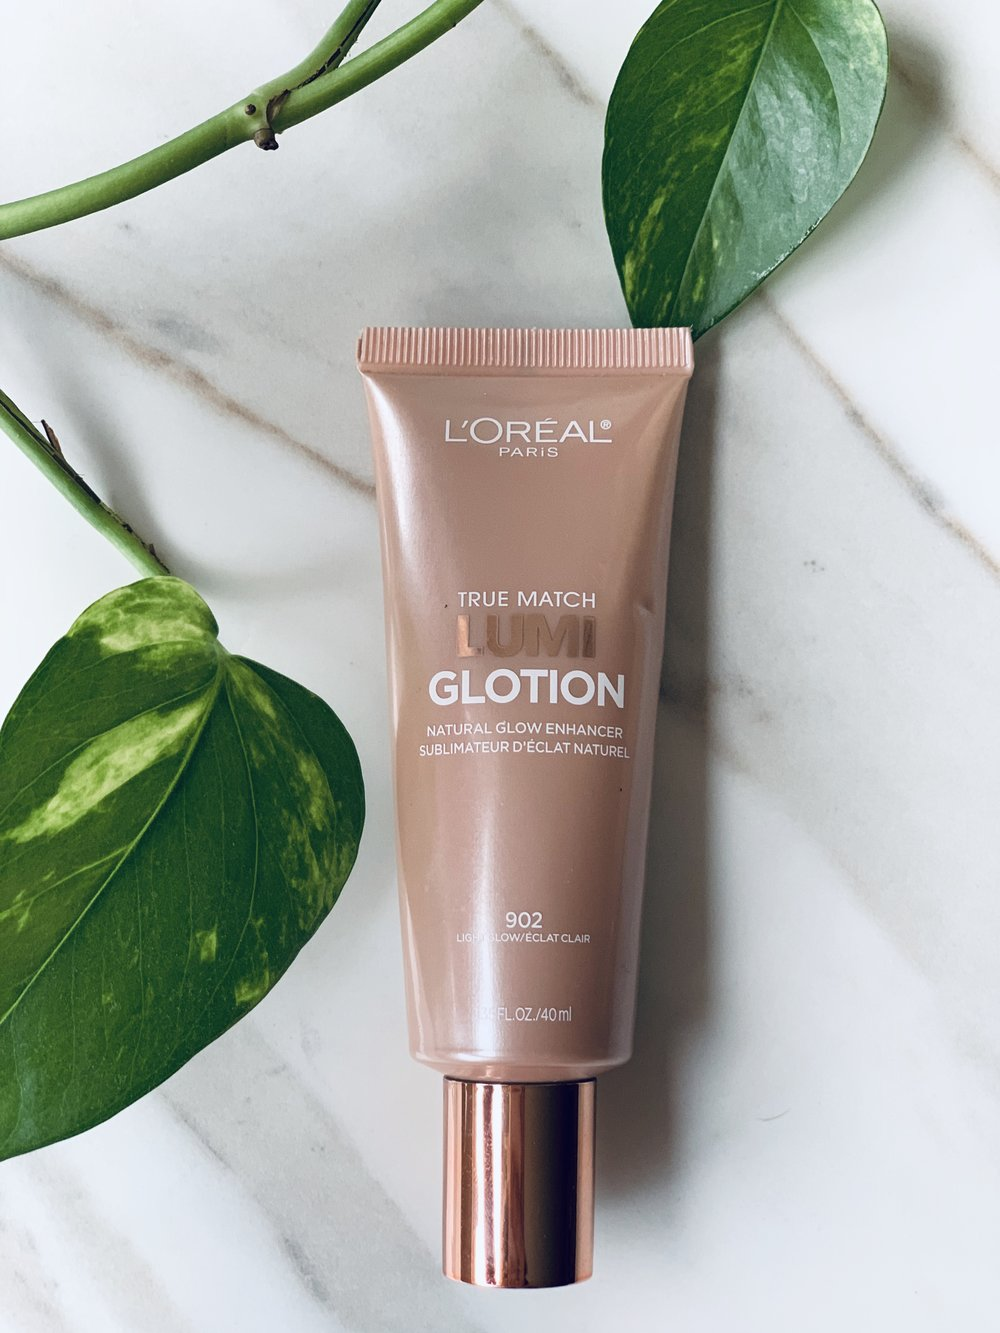 LOREAL - True Match LUMI Glotion